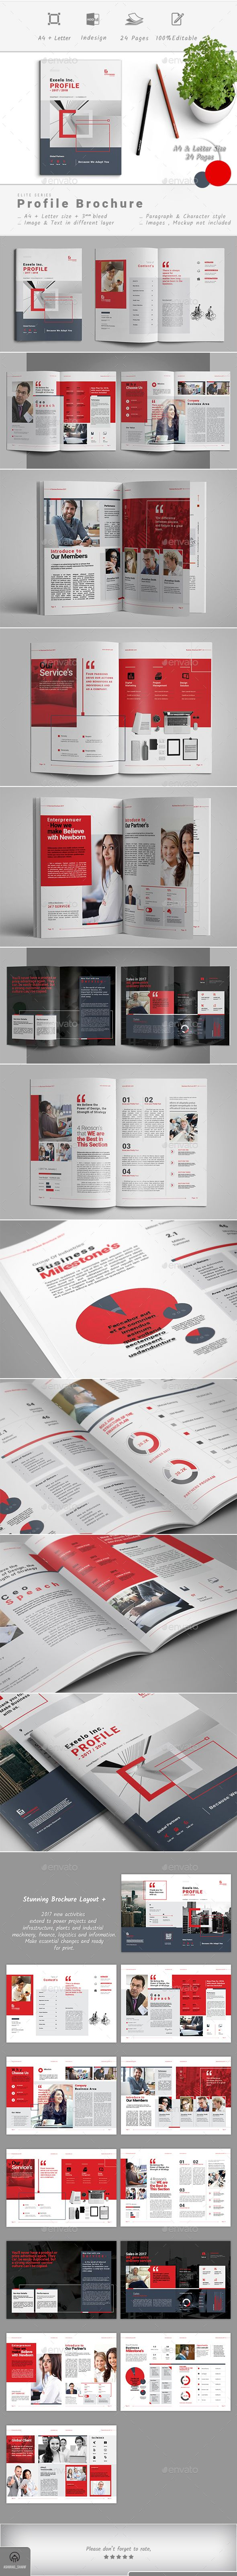 94 best Magazine images on Pinterest | Page layout, Editorial design ...